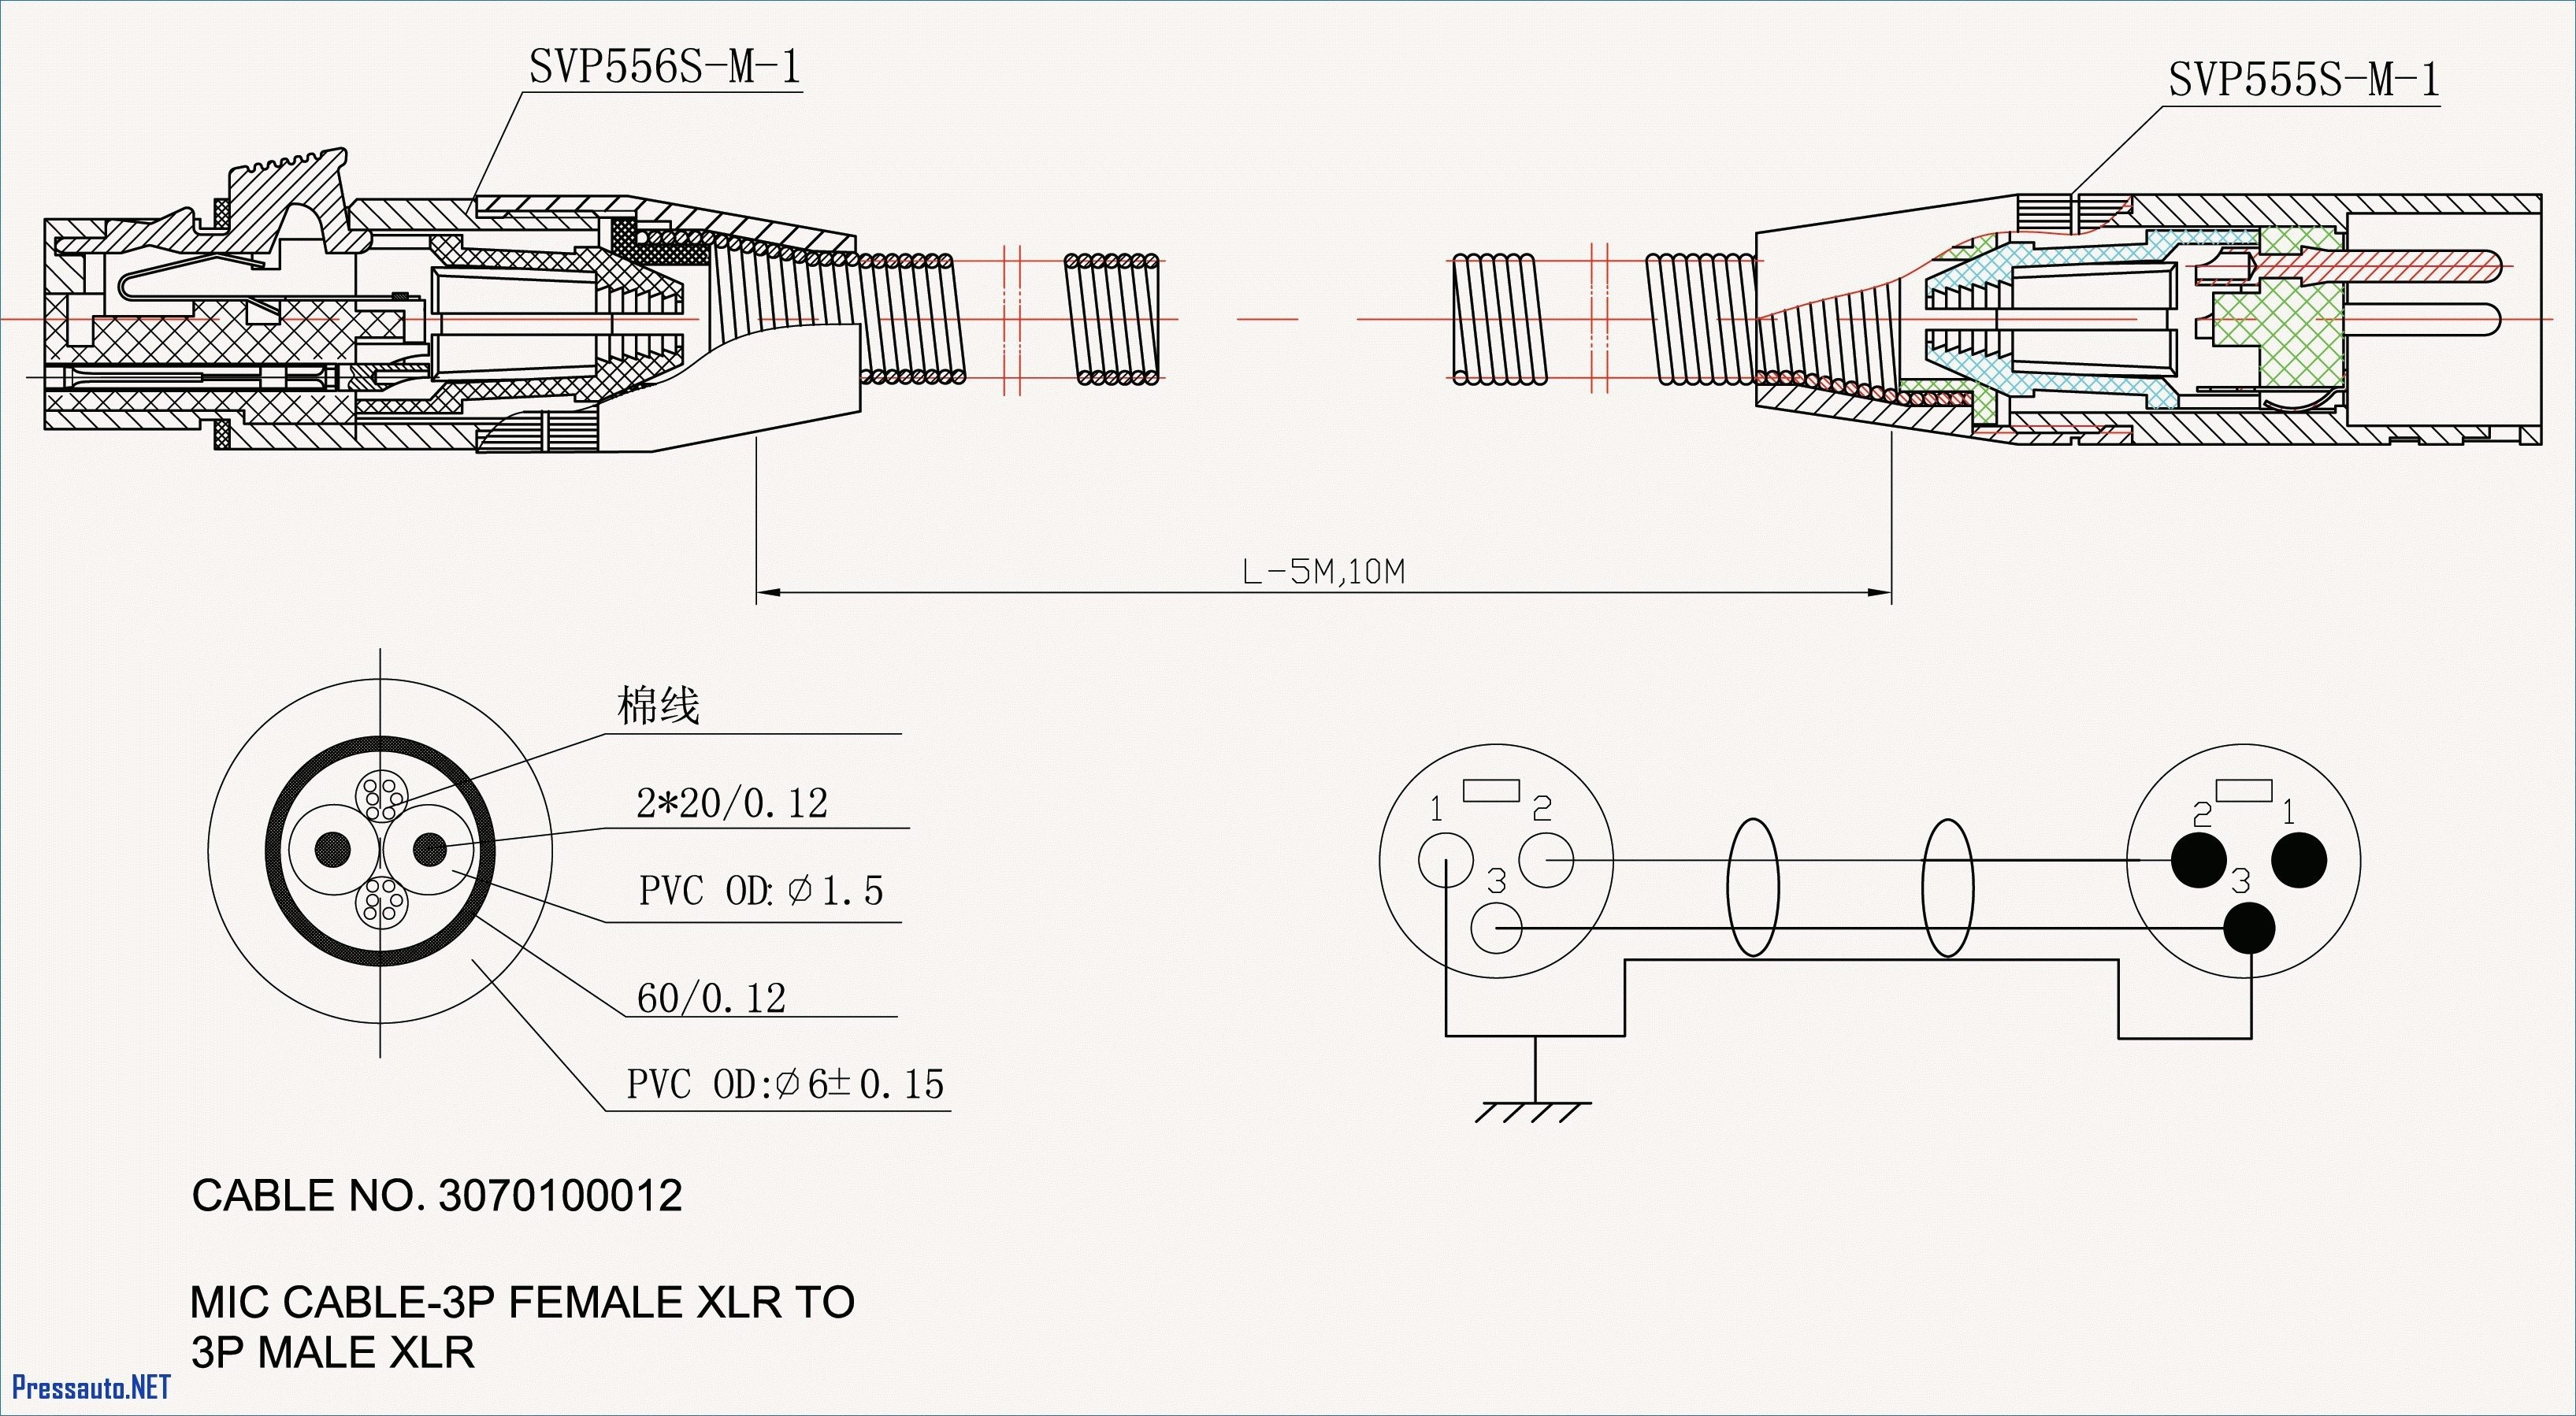 How to Wire 60 Amp Disconnect Nn 8306] Midwest Spa Disconnect Wiring Diagram Wiring Diagram Of How to Wire 60 Amp Disconnect